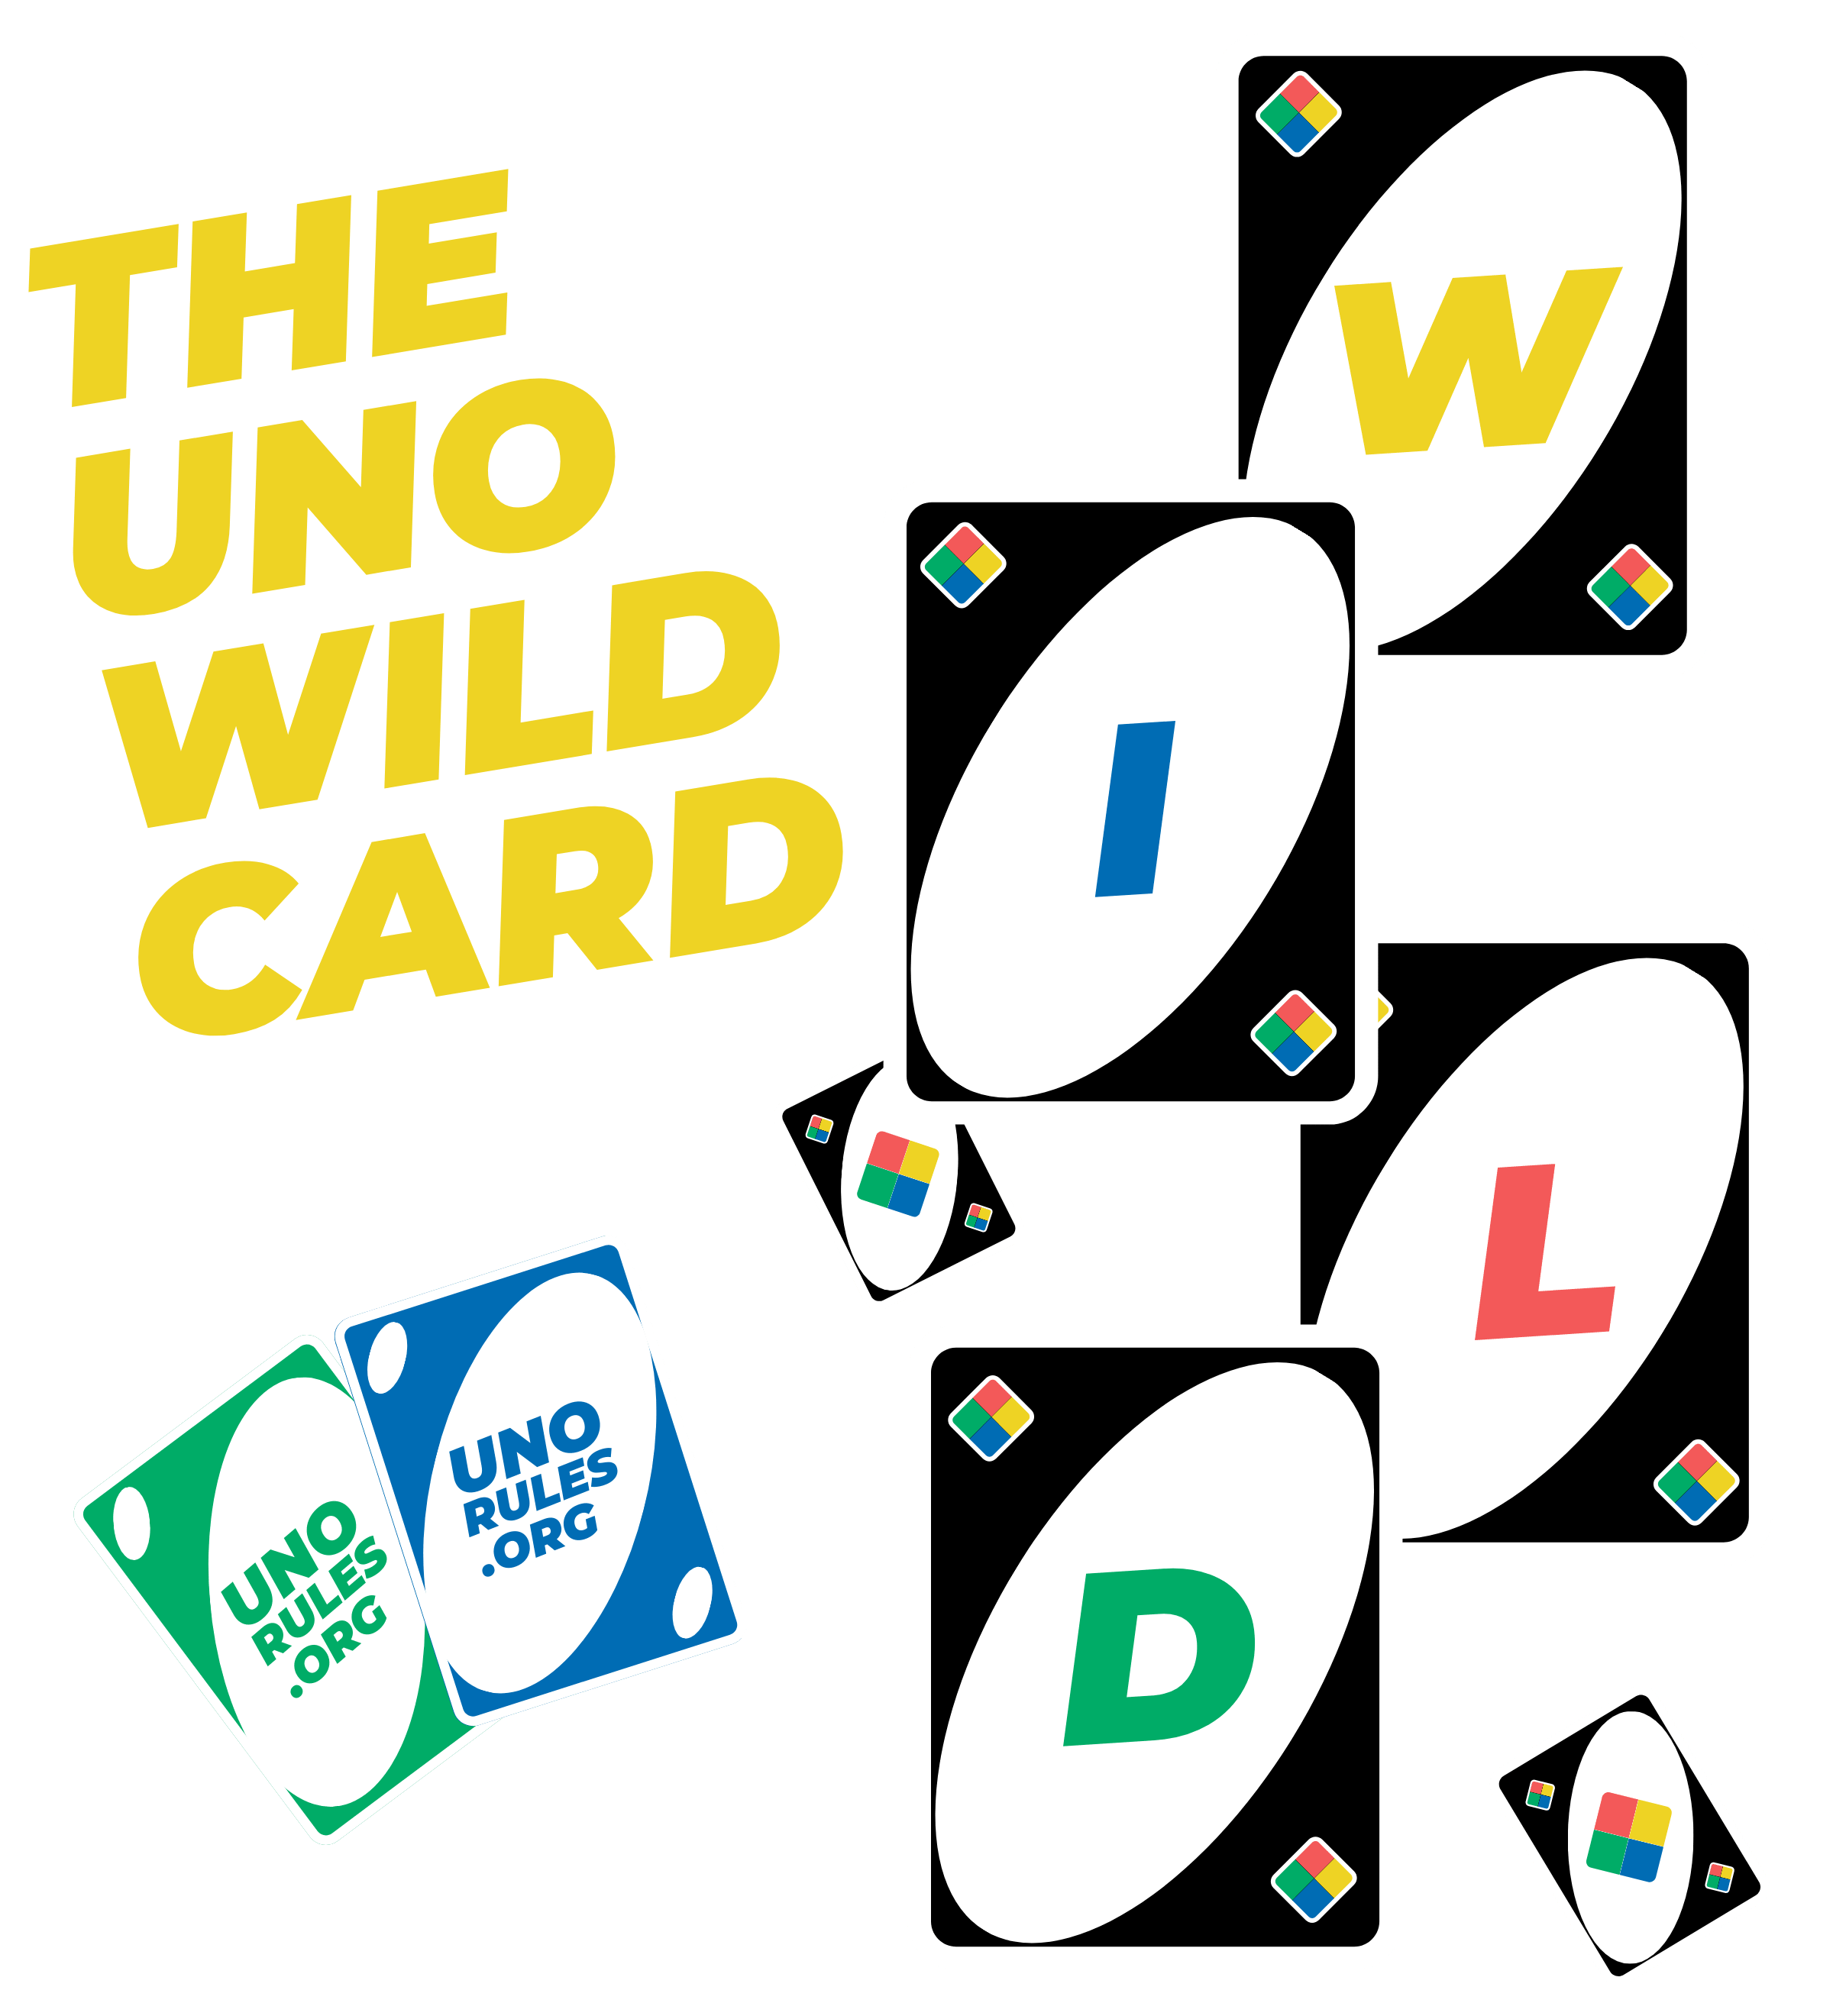 The Uno Wild Card rules